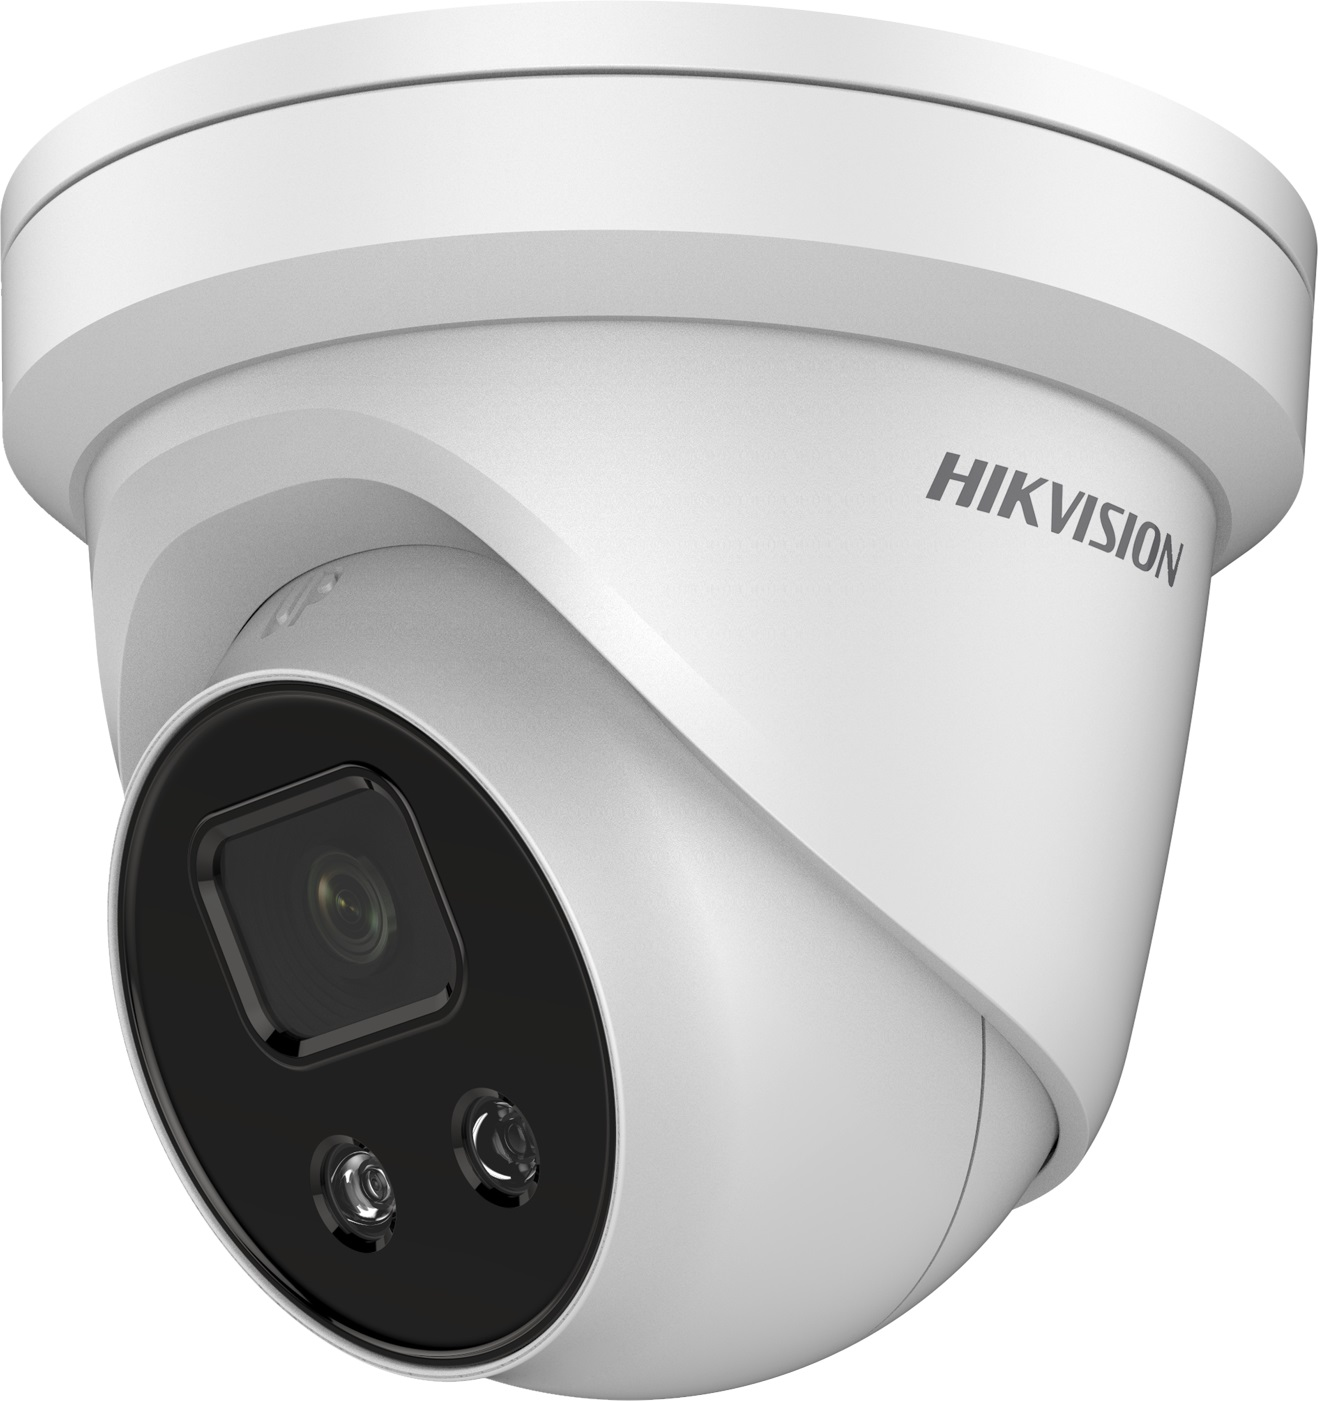 Hikvision AcuSense 4MP fixed lens Darkfighter turret camera with IR